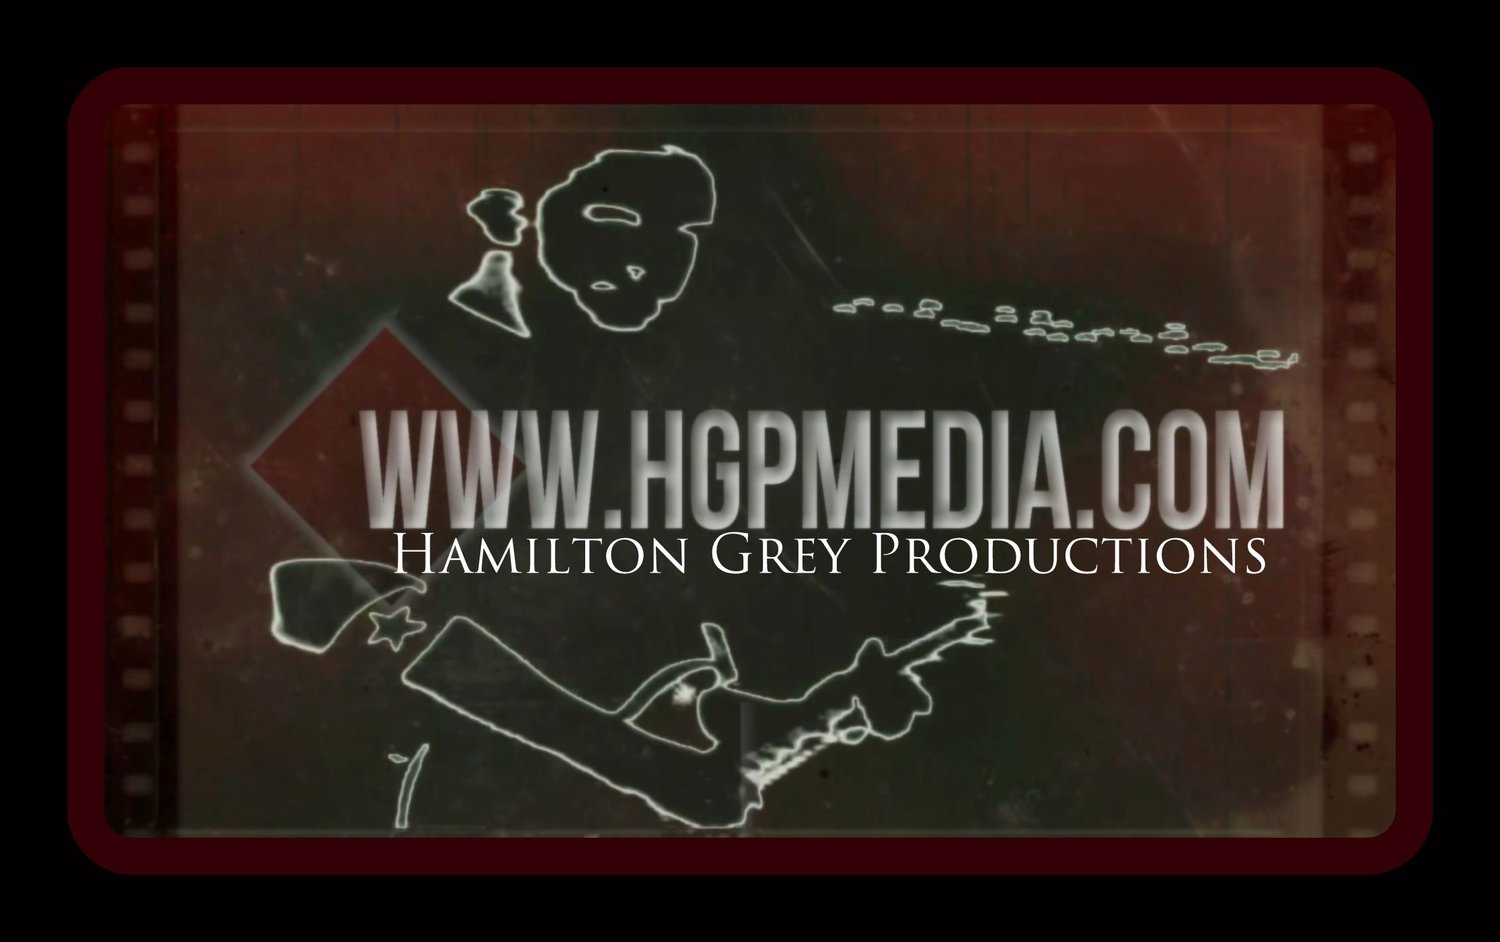 Hamilton Grey Productions